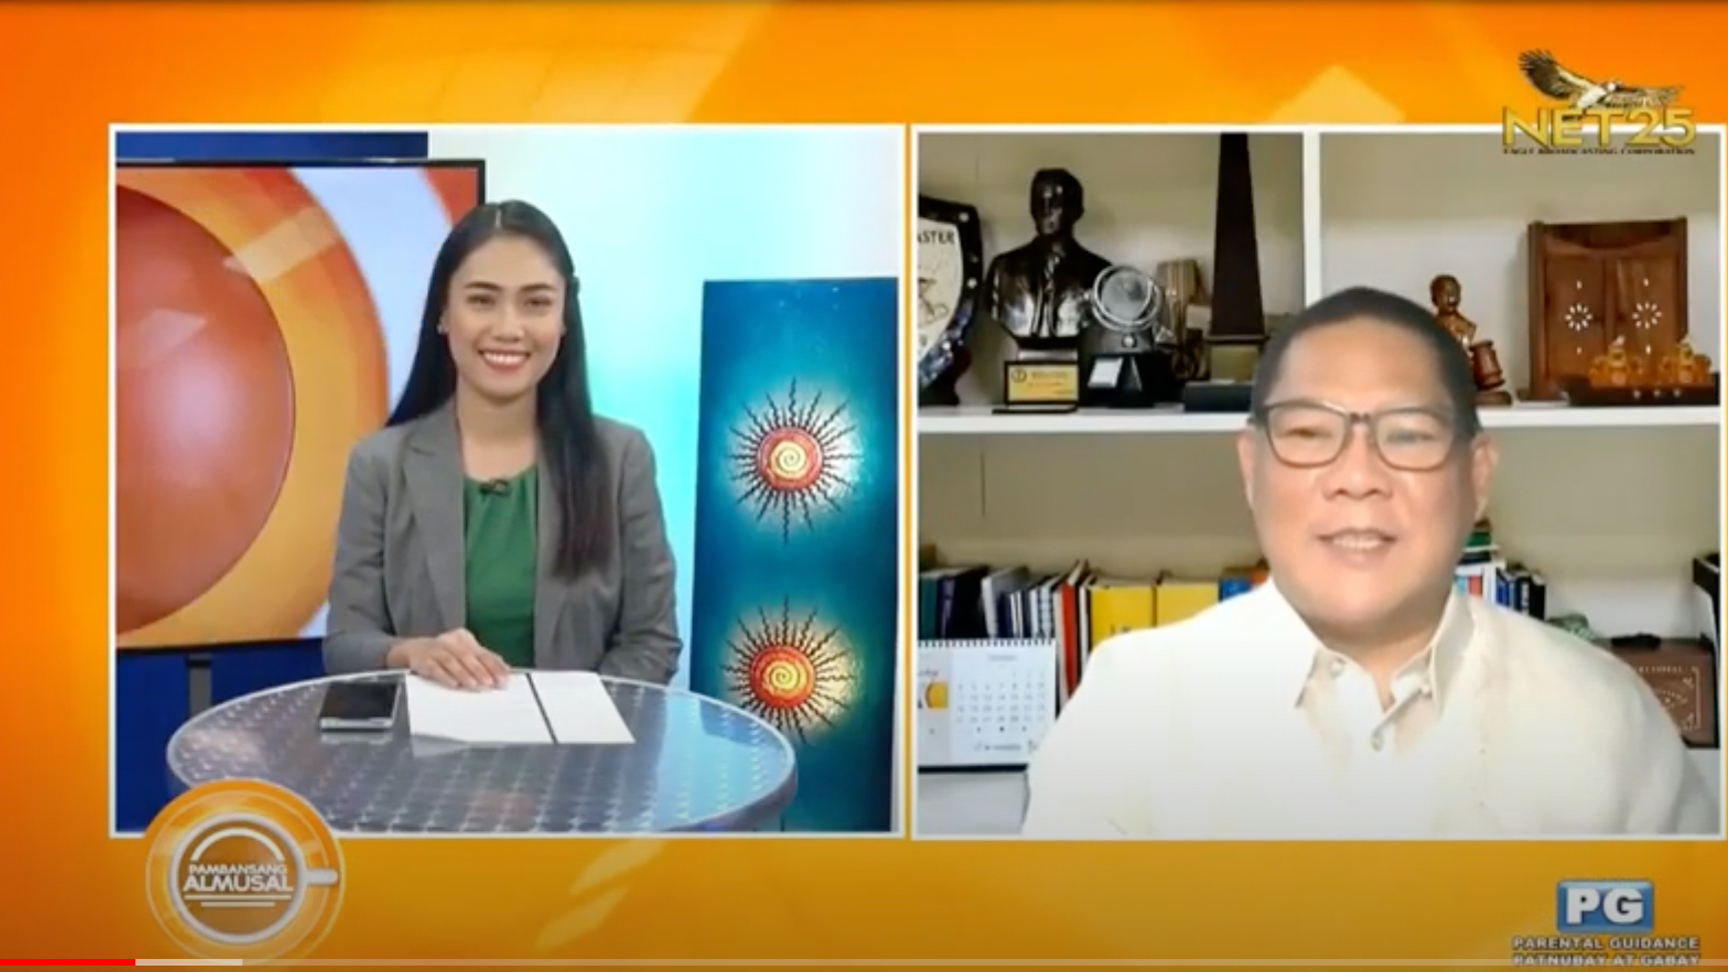 DepEd Usec Mateo explains new standards for school heads, supervisors